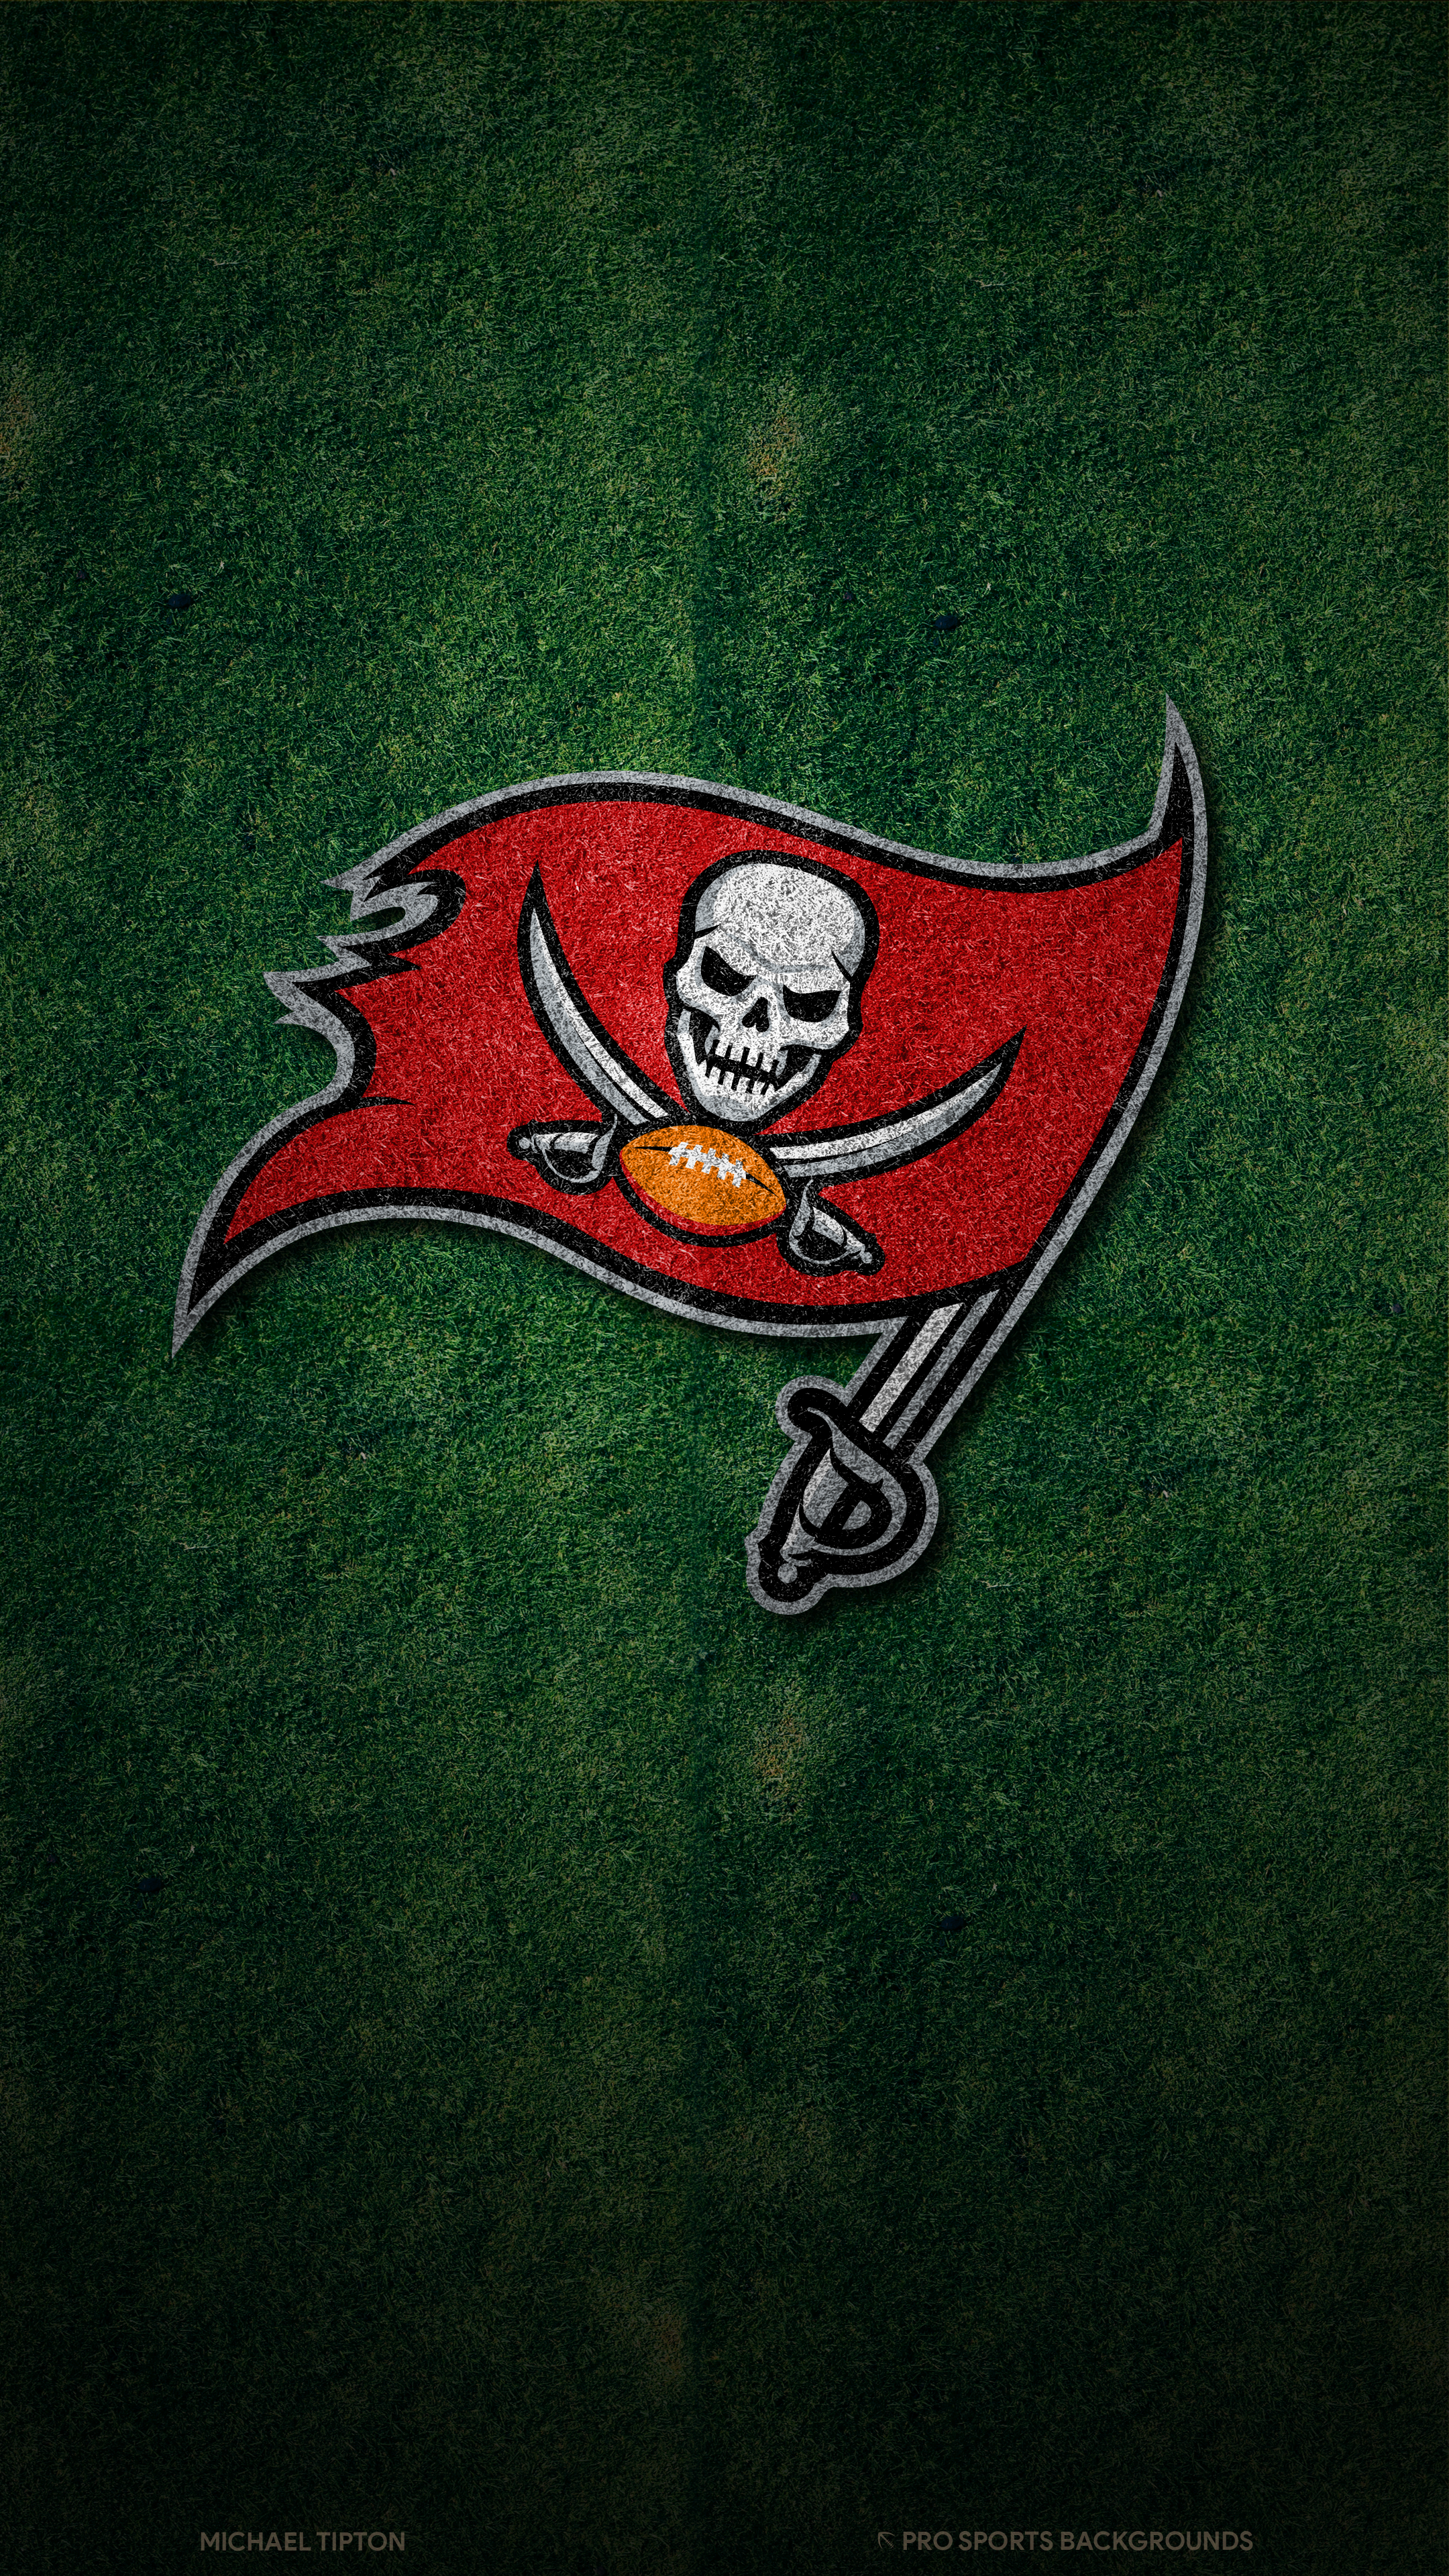 2019 Tampa Bay Buccaneers Wallpapers Pro Sports Backgrounds Tampa Bay Tampa Bay Buccaneers Buccaneers